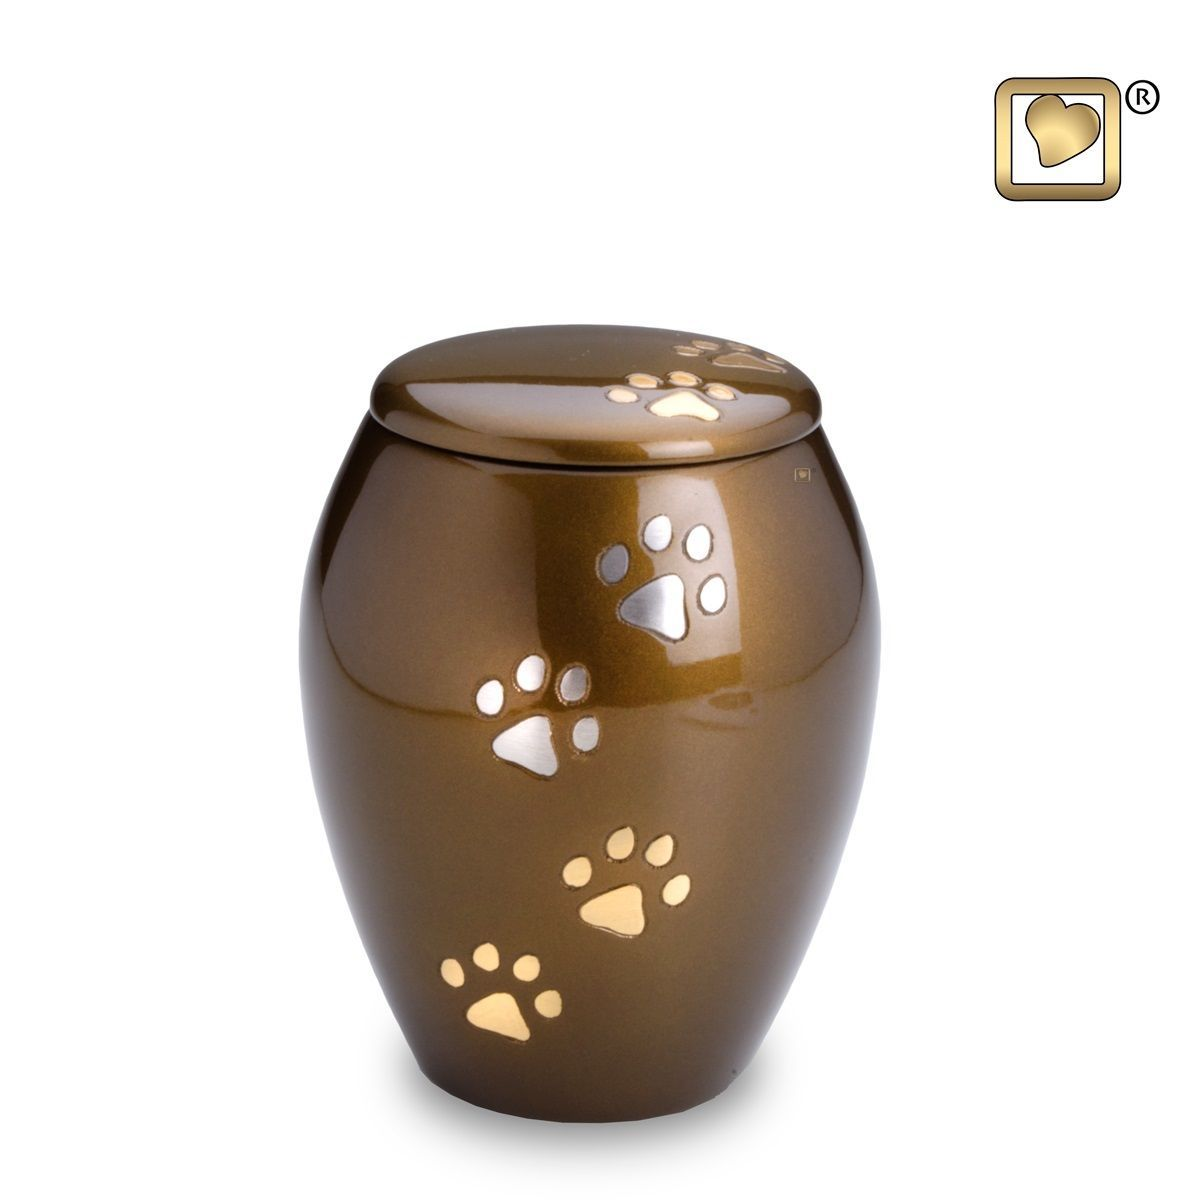 Majestic Paws Small Pet Funeral Cremation Urn, 60 Cubic Inches